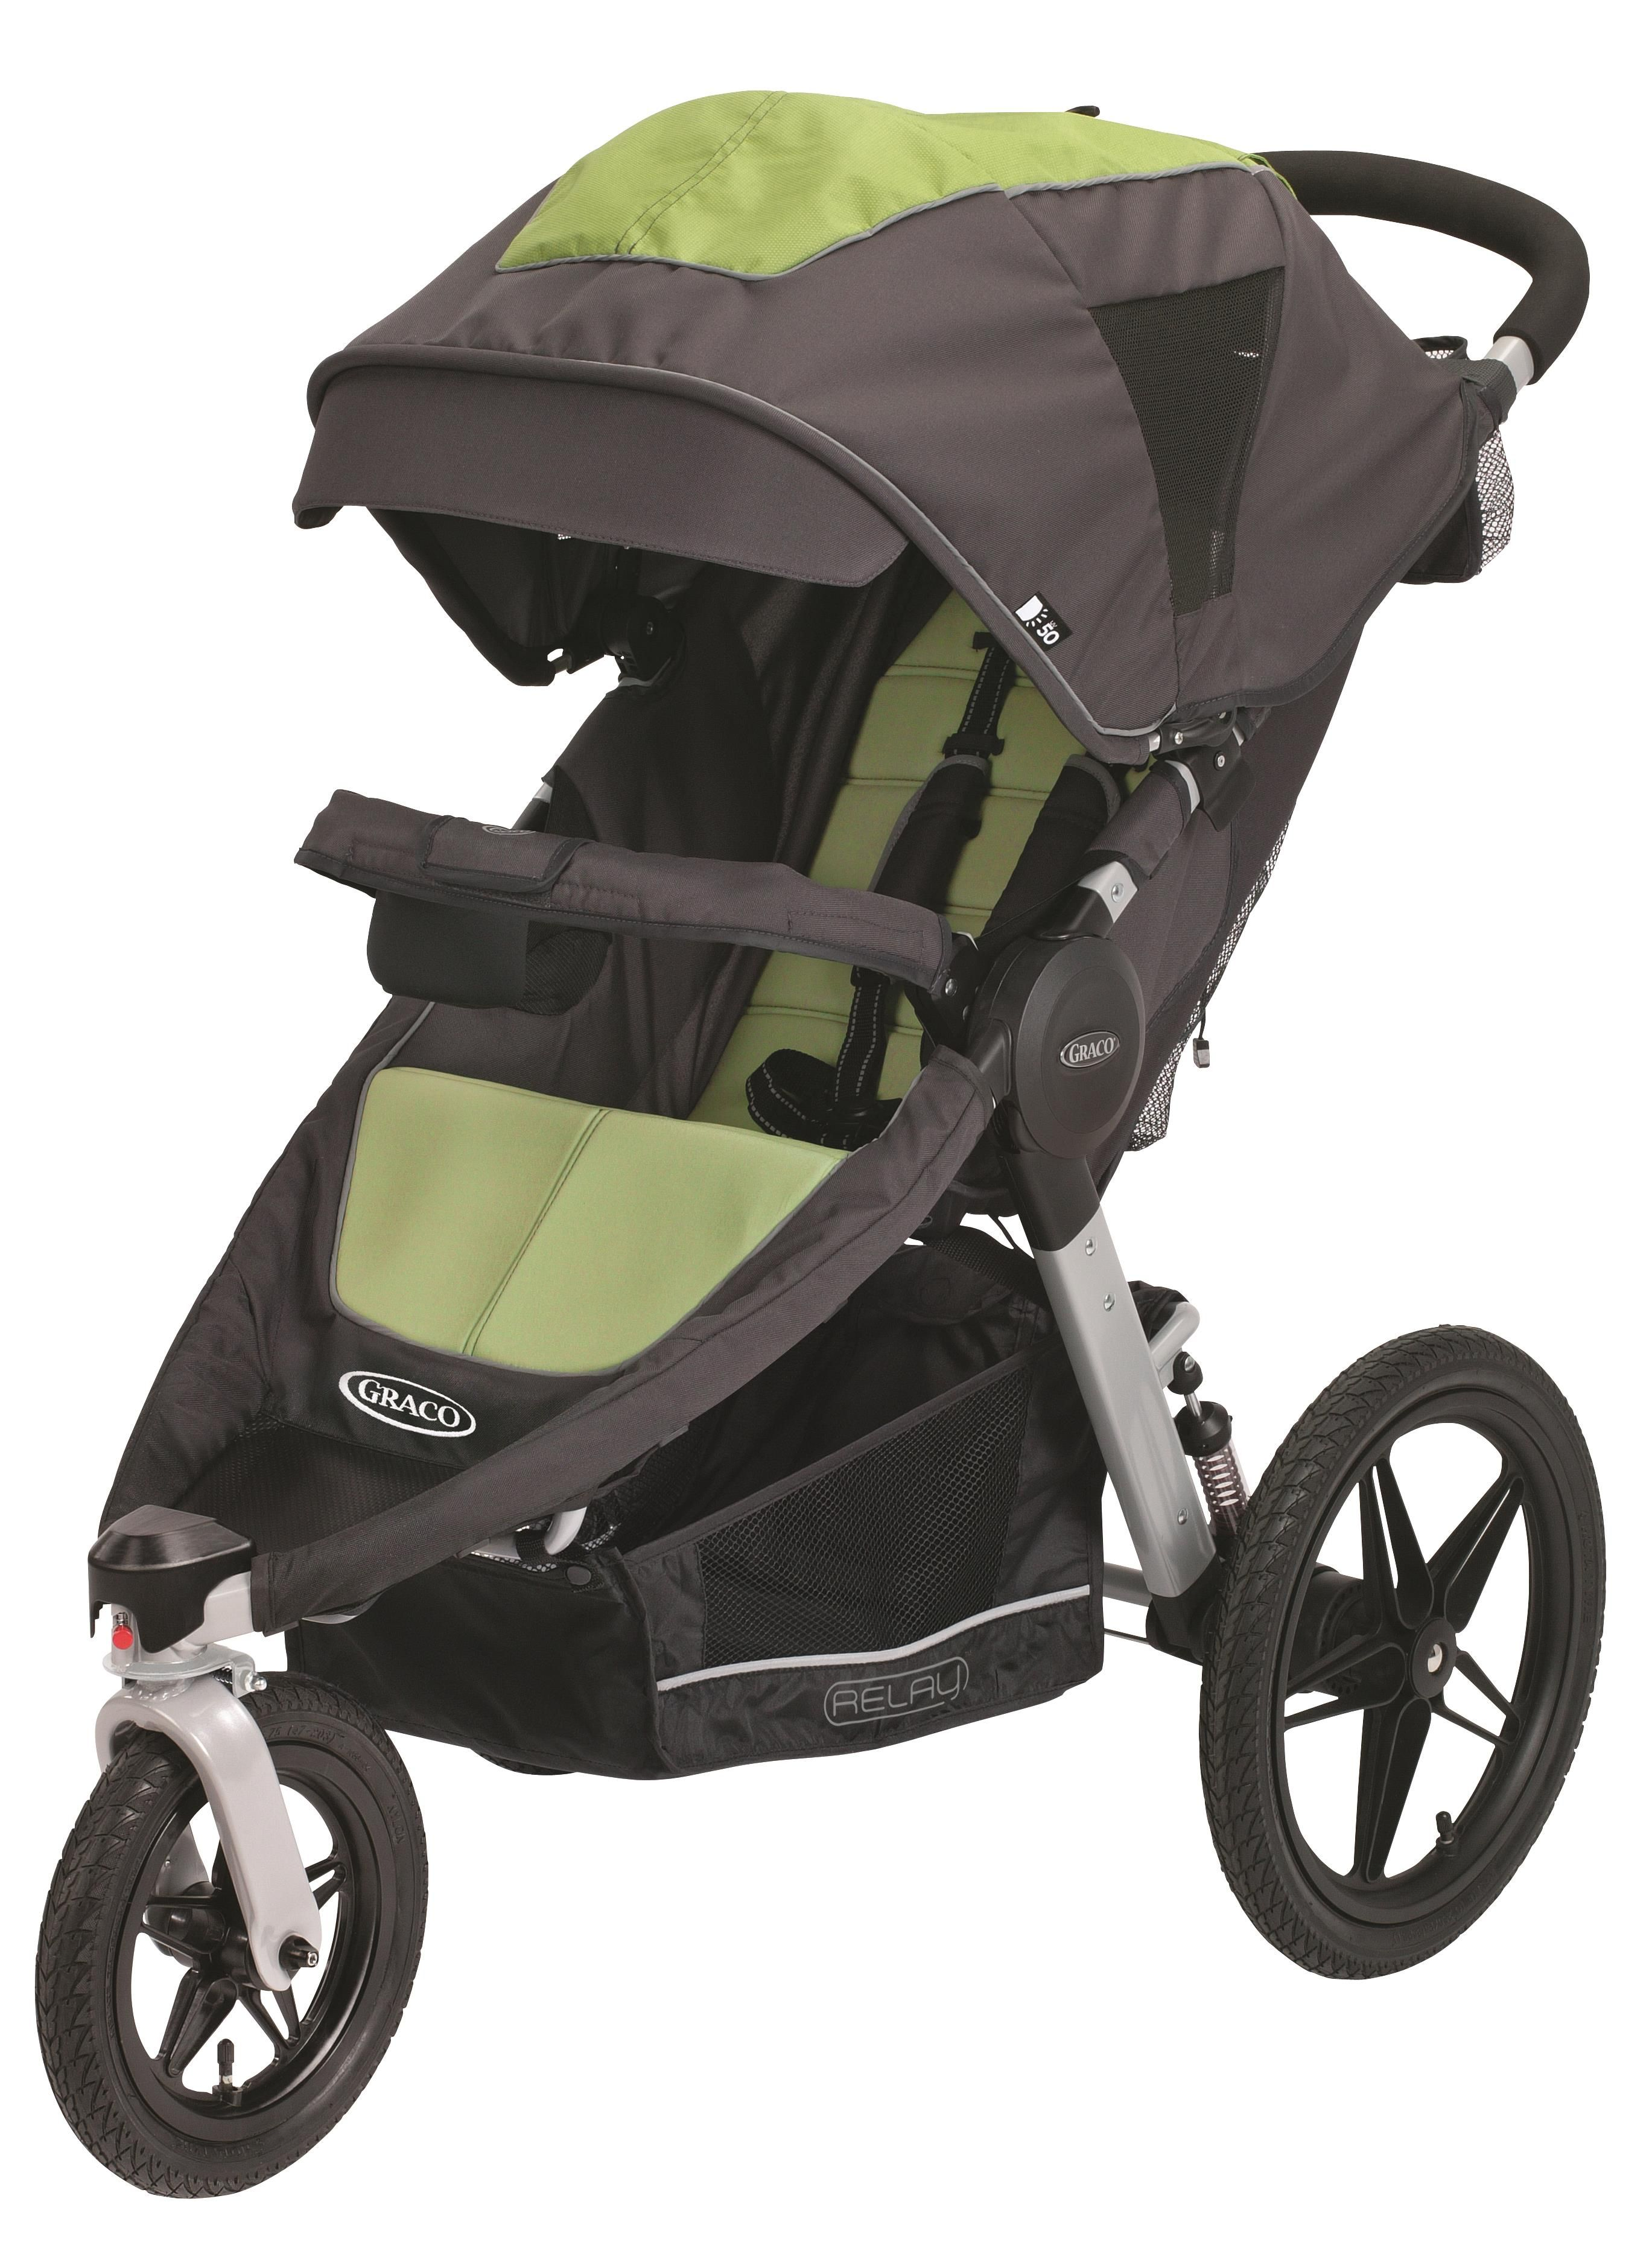 Graco Relay stroller in Lynx, with all accessories